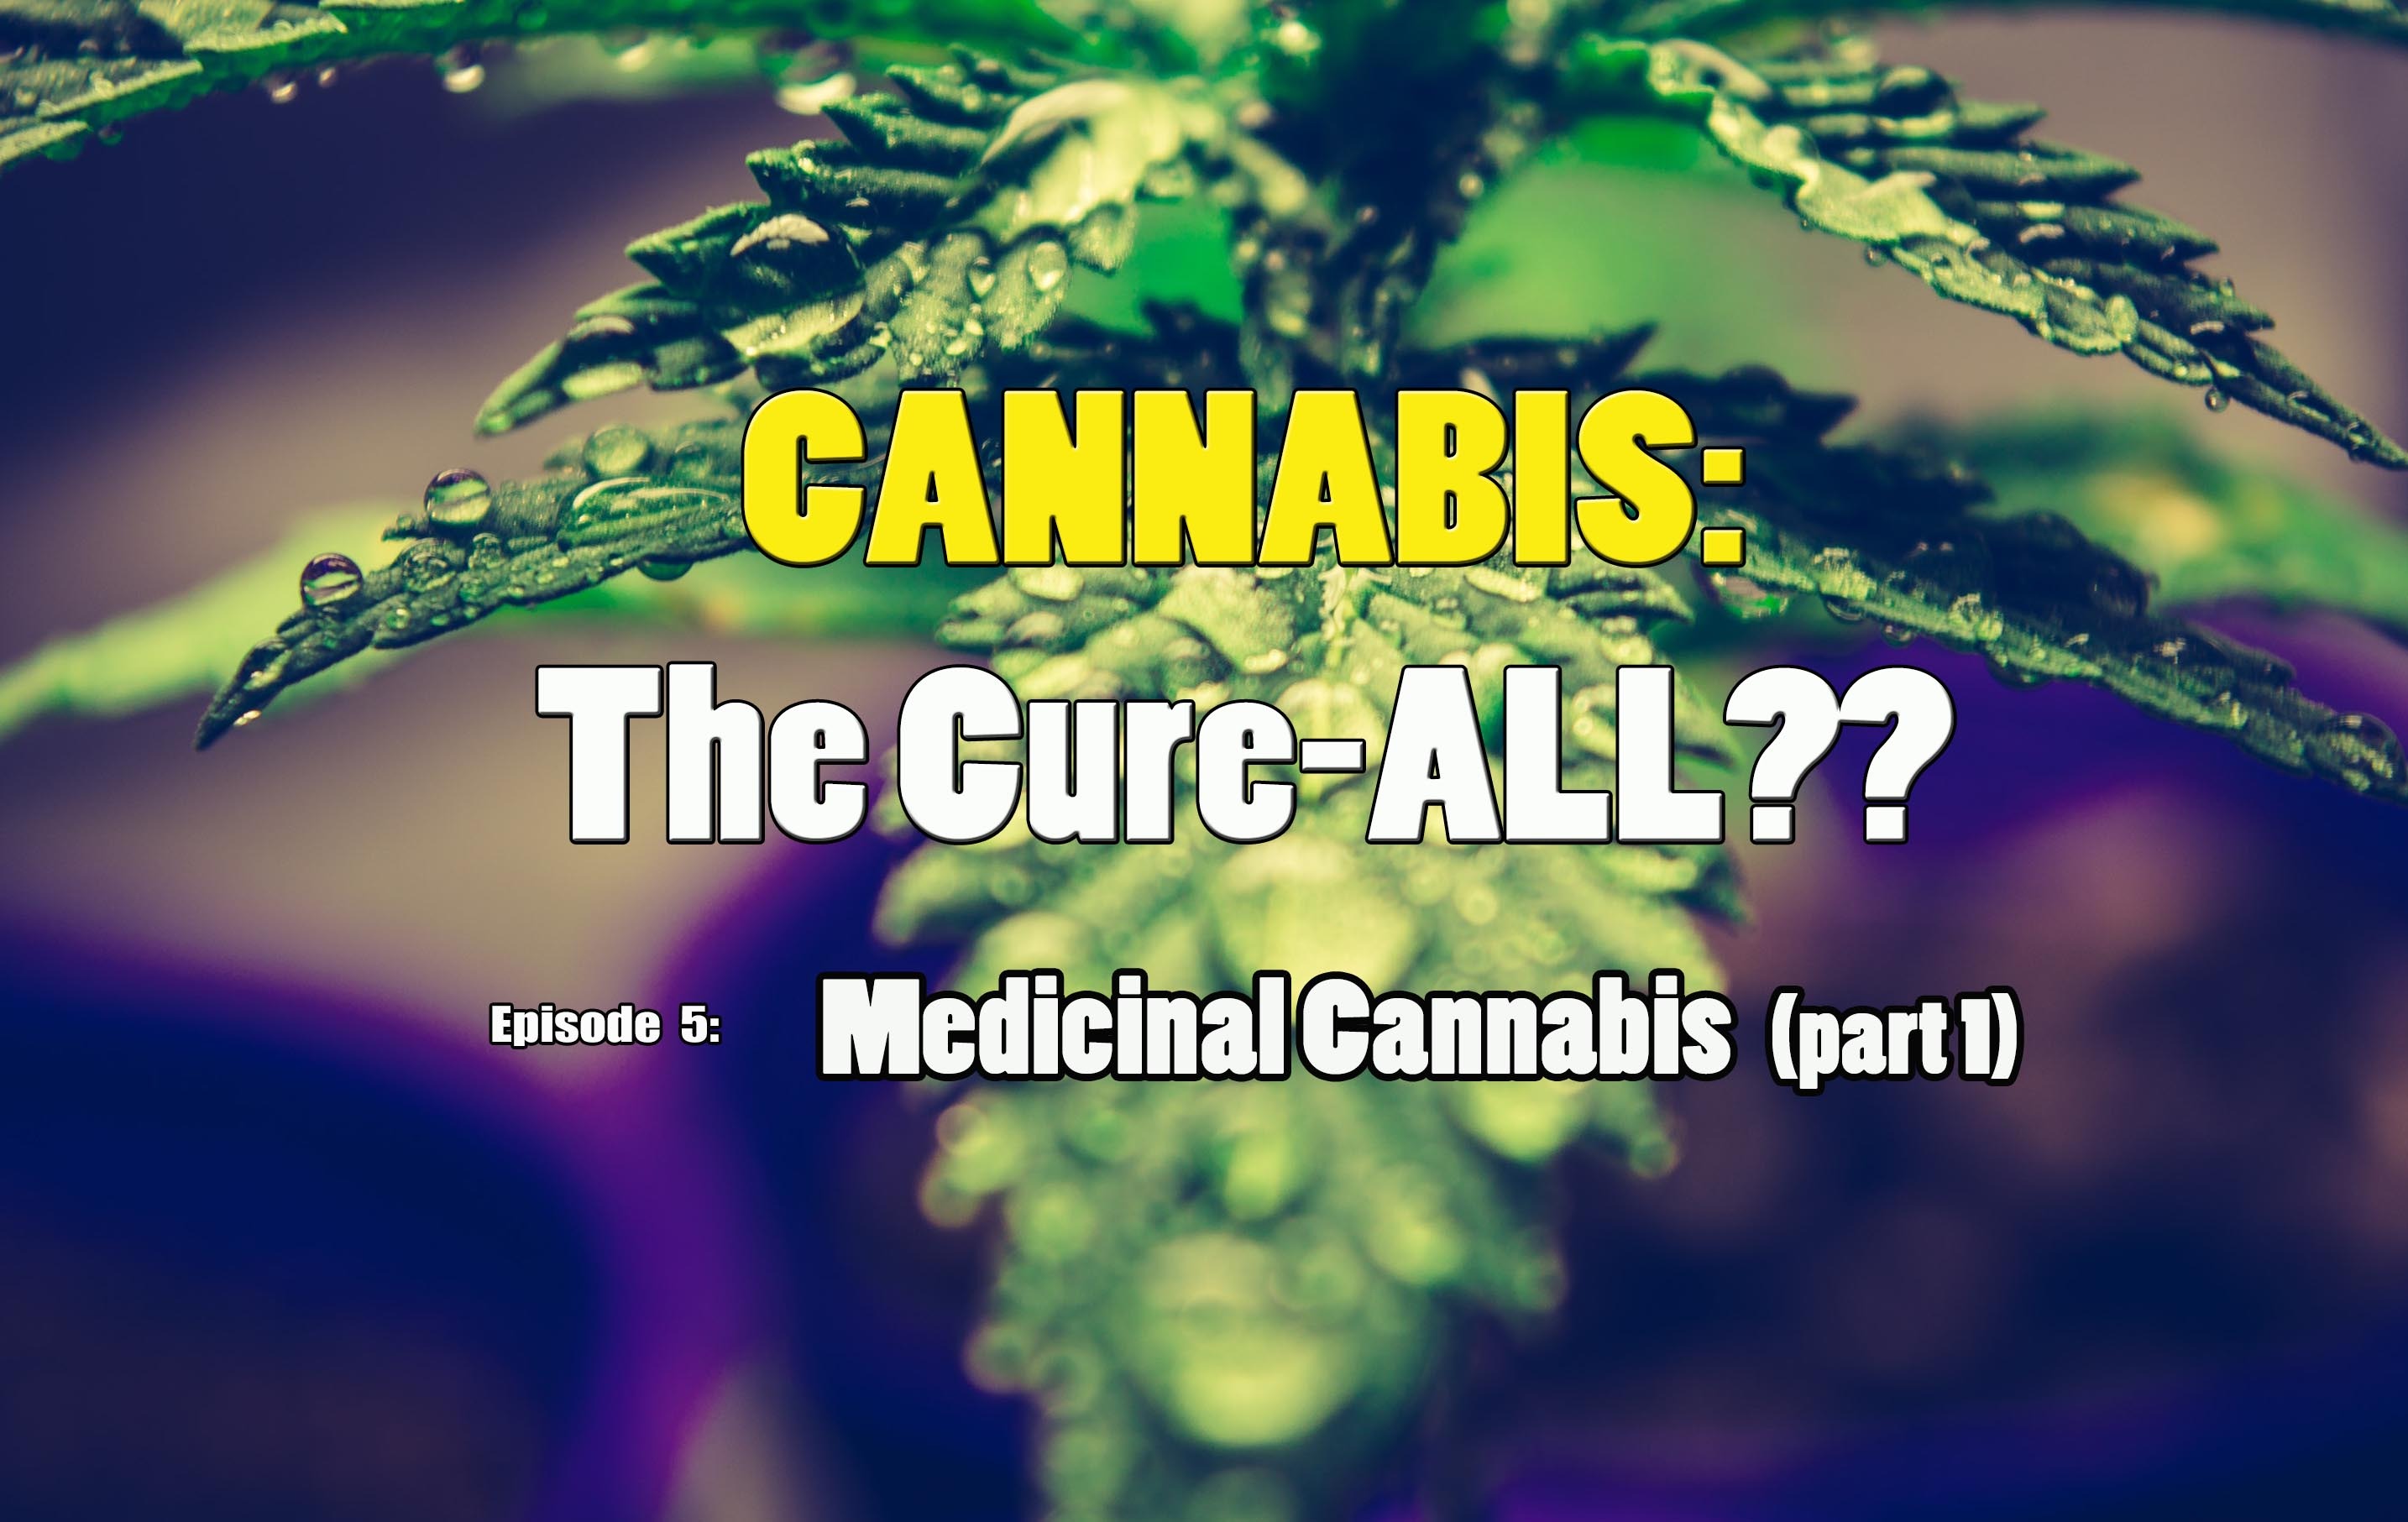 Medicinal Cannabis (part 1)